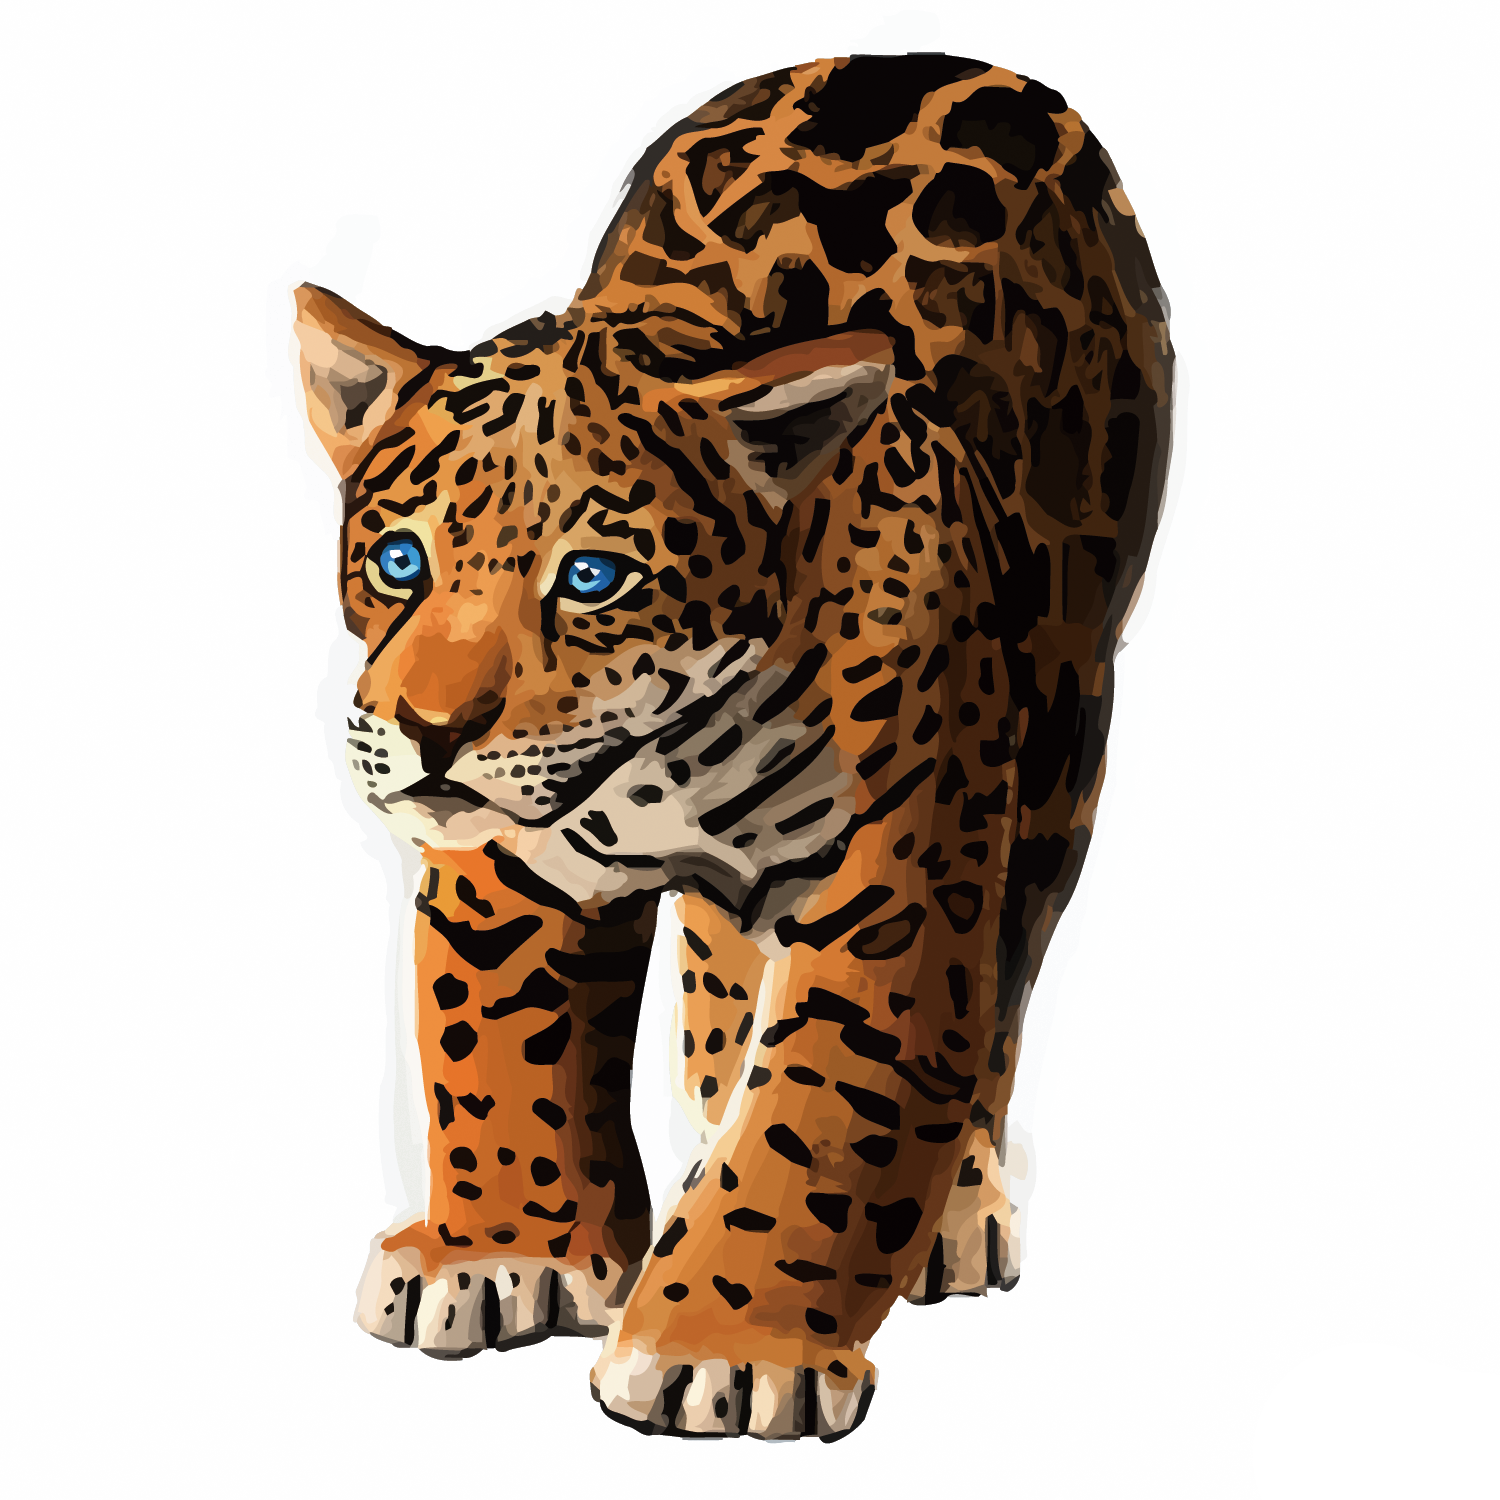 Jaguar transparent vector. Leopard tiger black panther